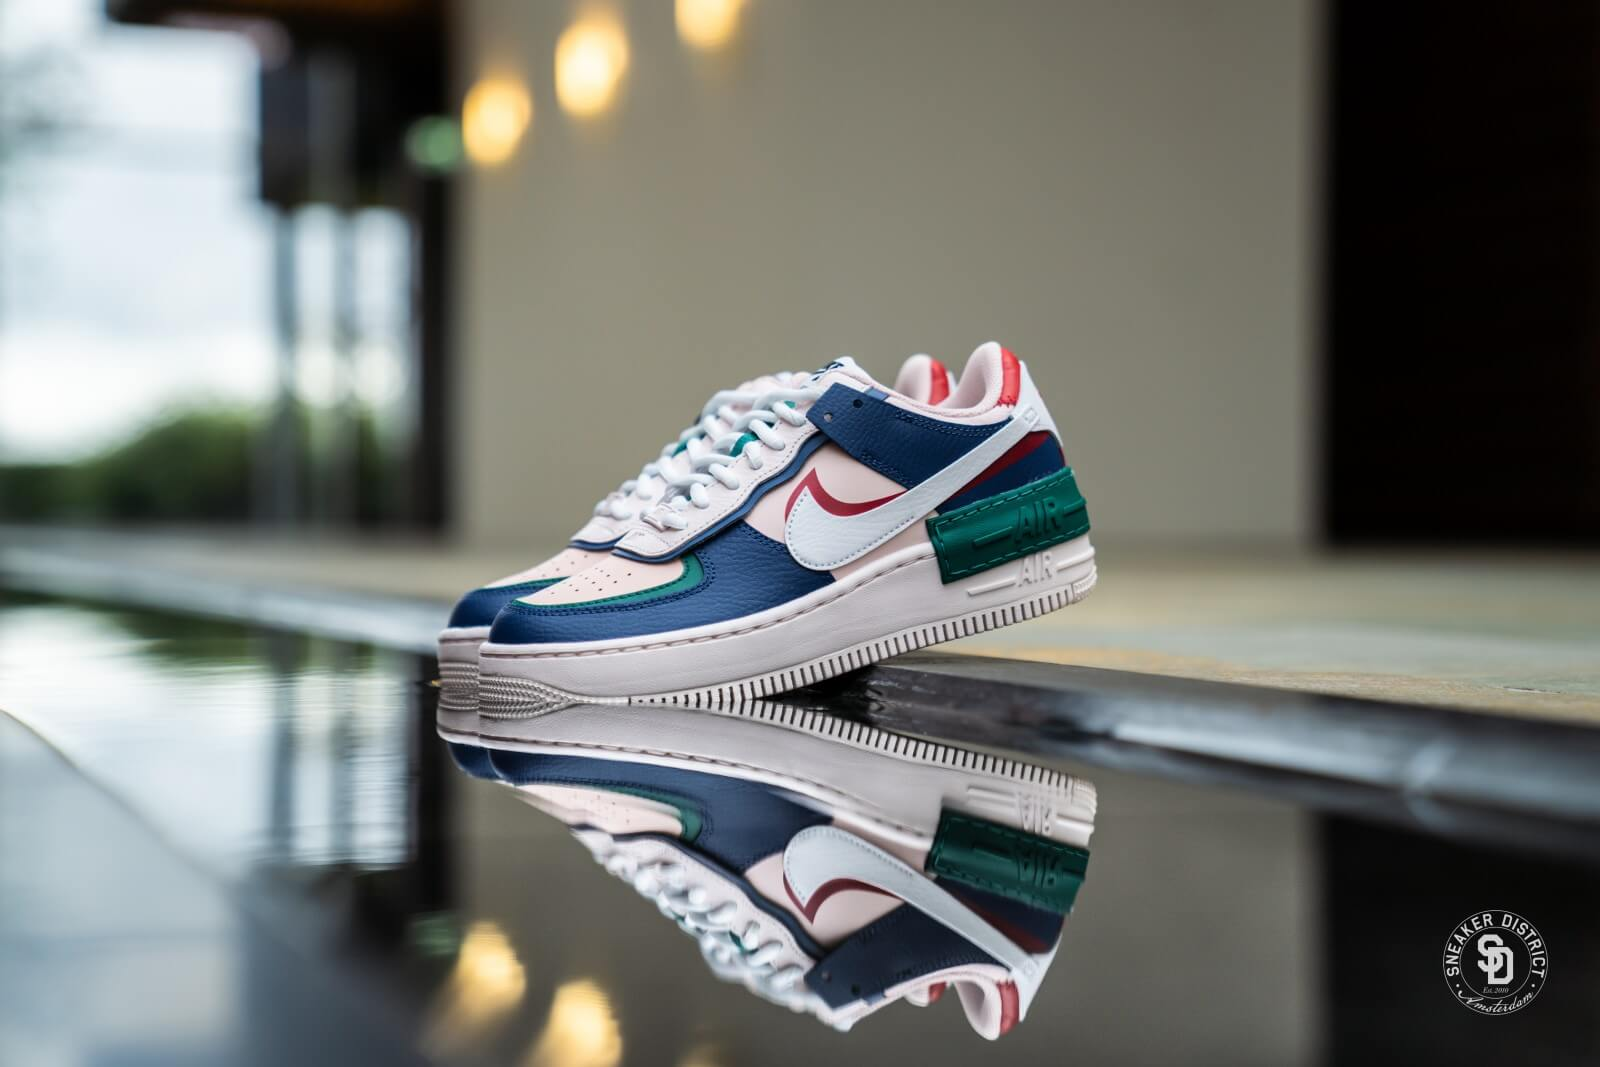 Nike Wmns Air Force 1 Low *Shadow Mystic Navy*